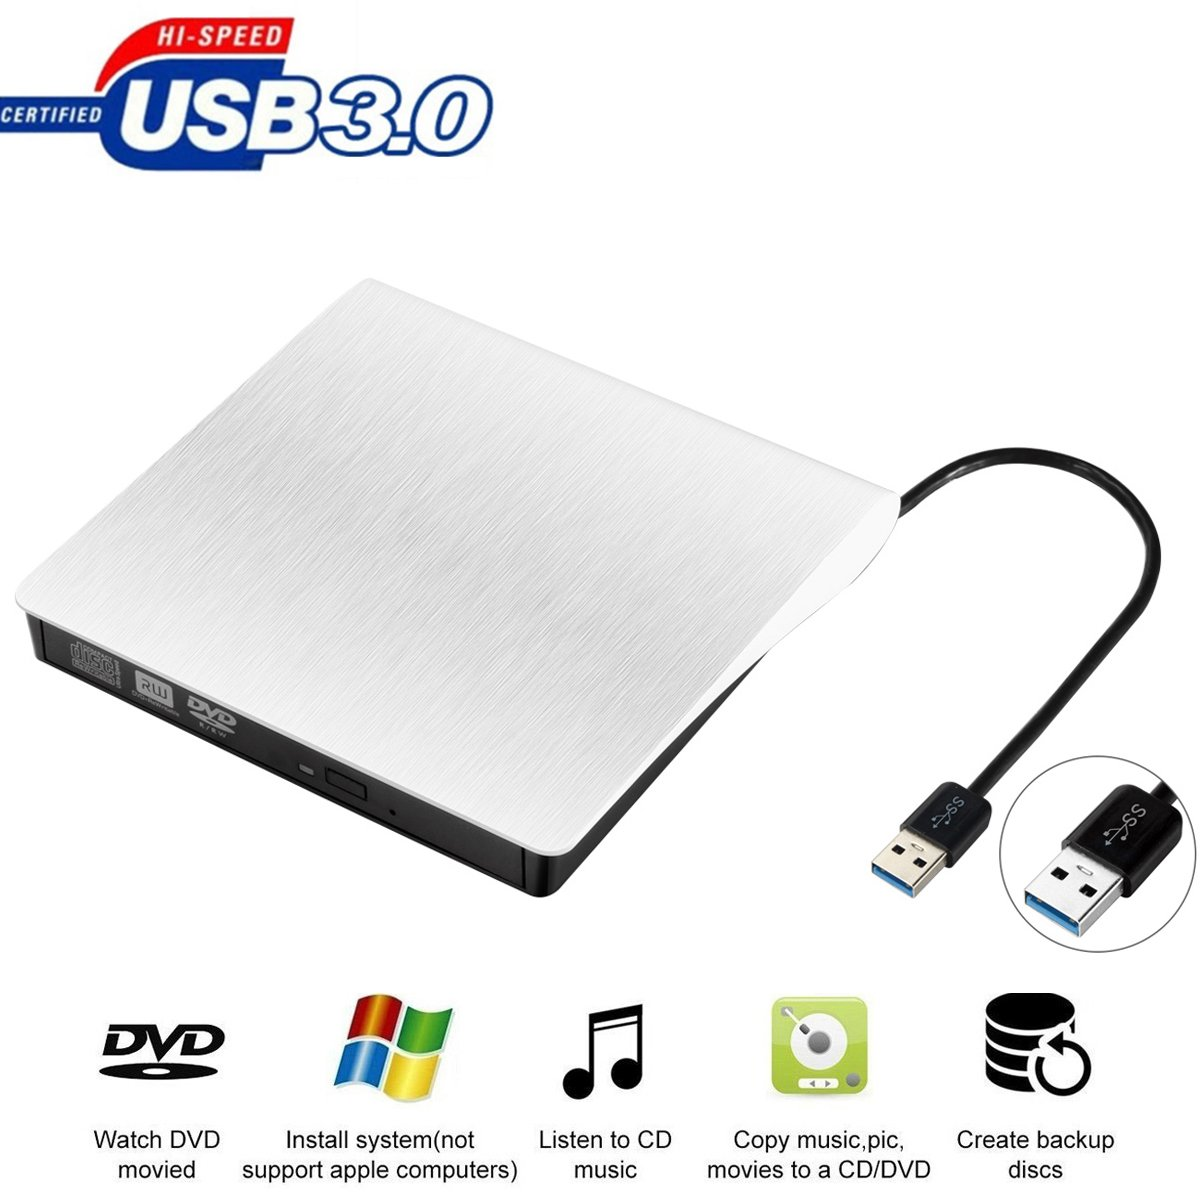 External DVD Drive for Laptop, Sibaok Portable USB 3.0 DVD-RW Player CD Drive, Optical Burner Writer Rewriter for Mac Computer Notebook Desktop PC Windows 7/8/10, Slim White